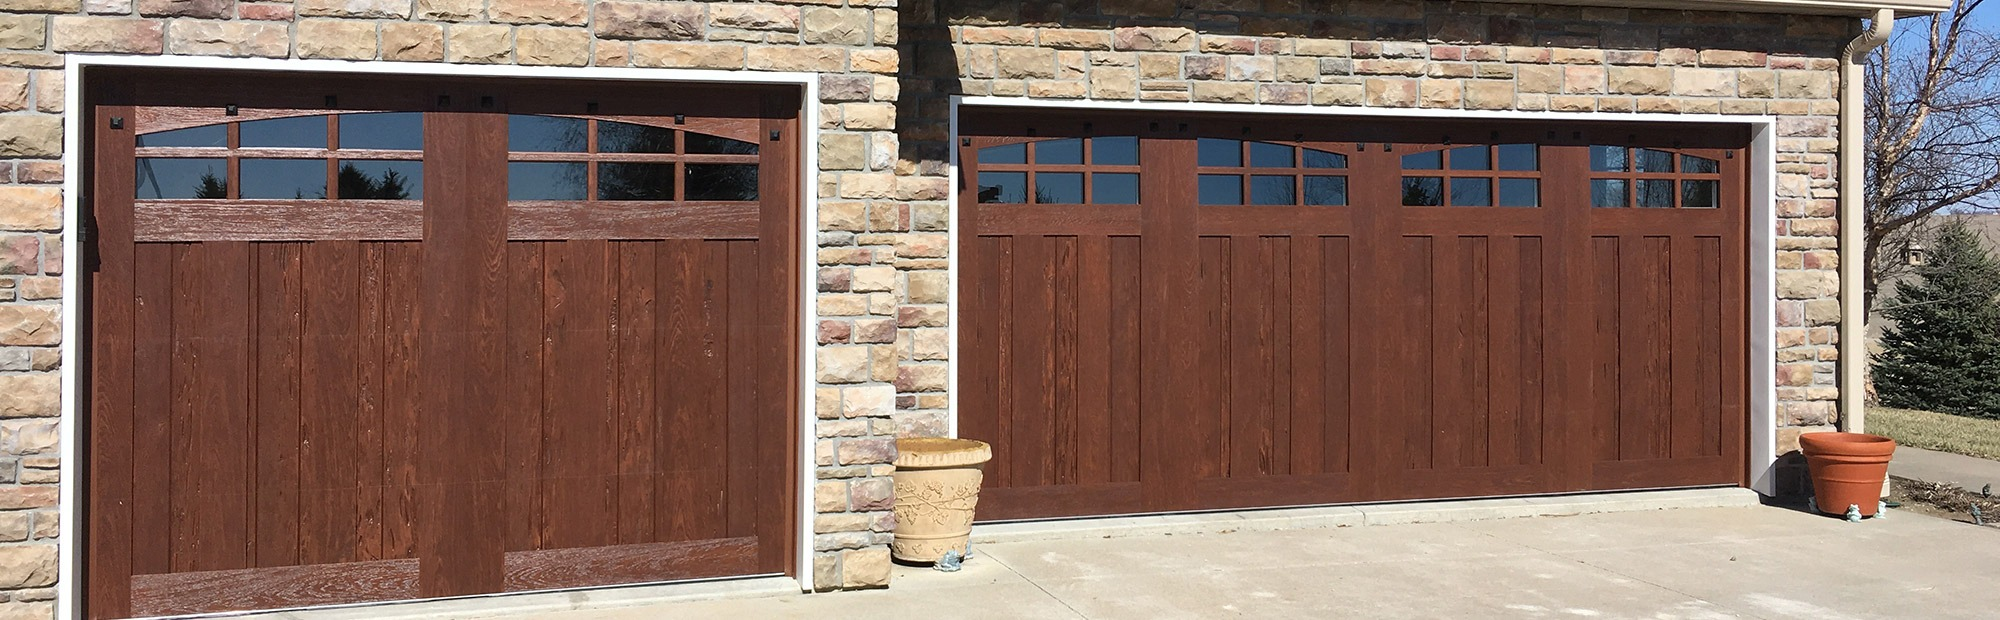 Your Garage Door & Service Experts